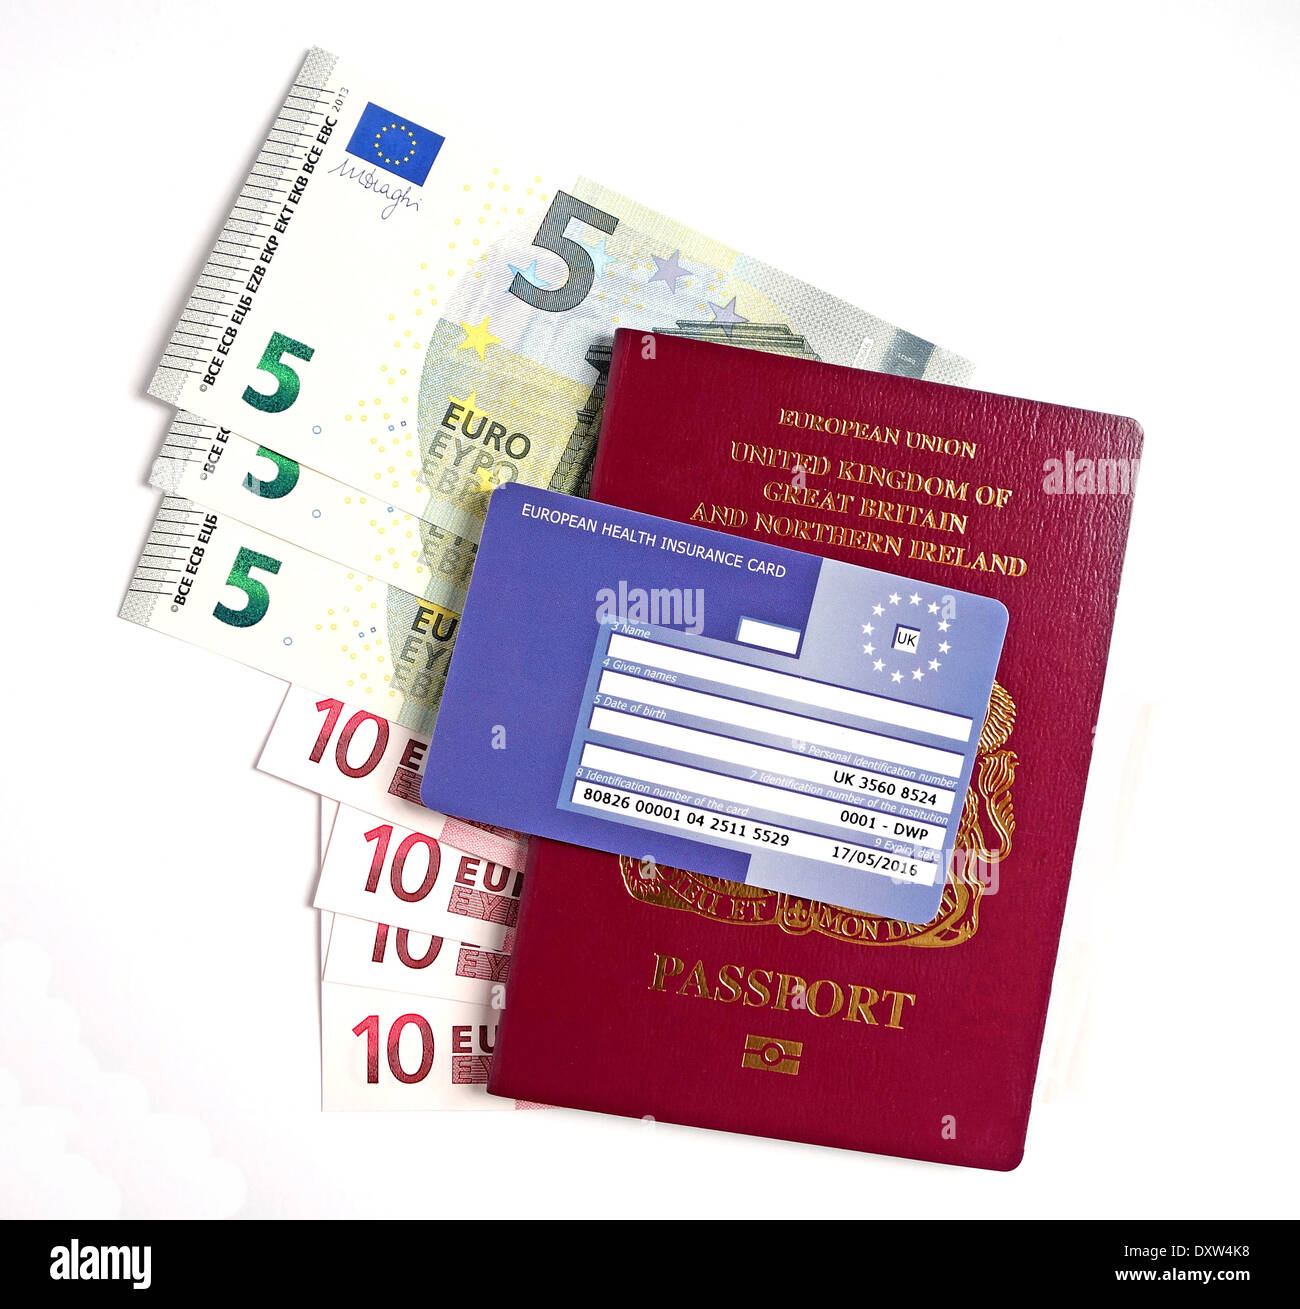 a uk passport, euros and ehic card - Stock Image